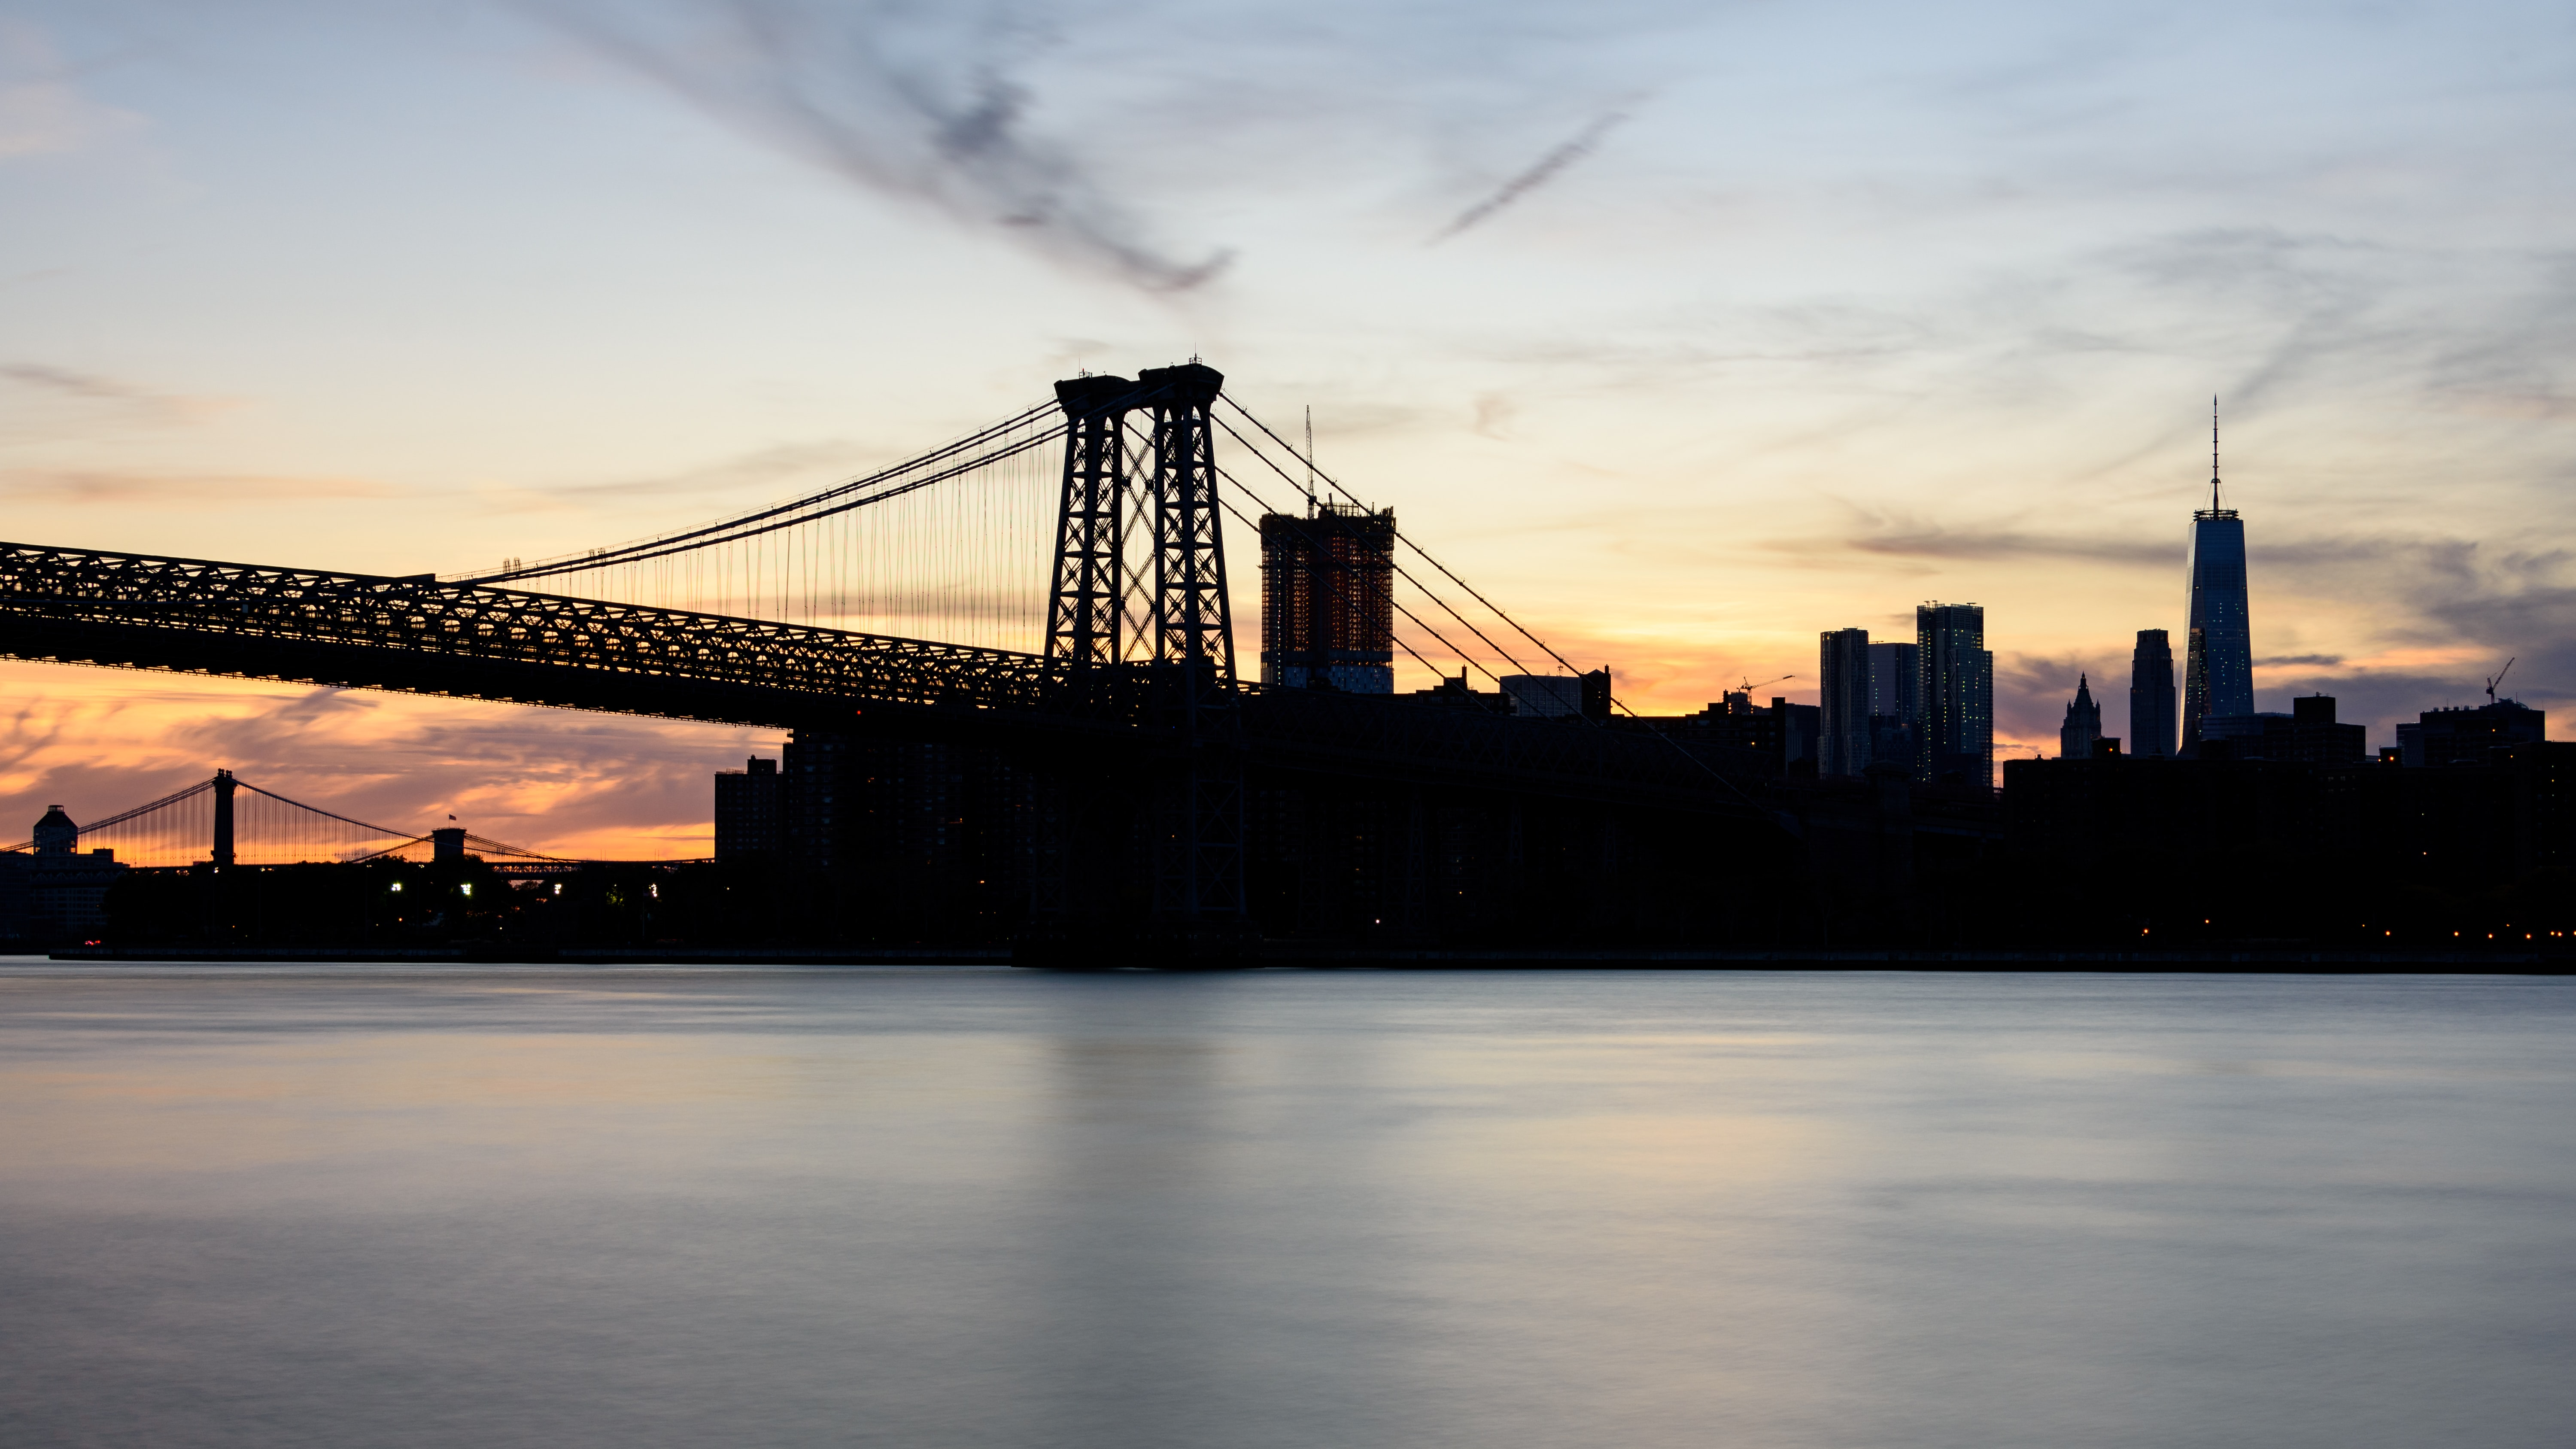 silhouette photograph of bridge and city buildings